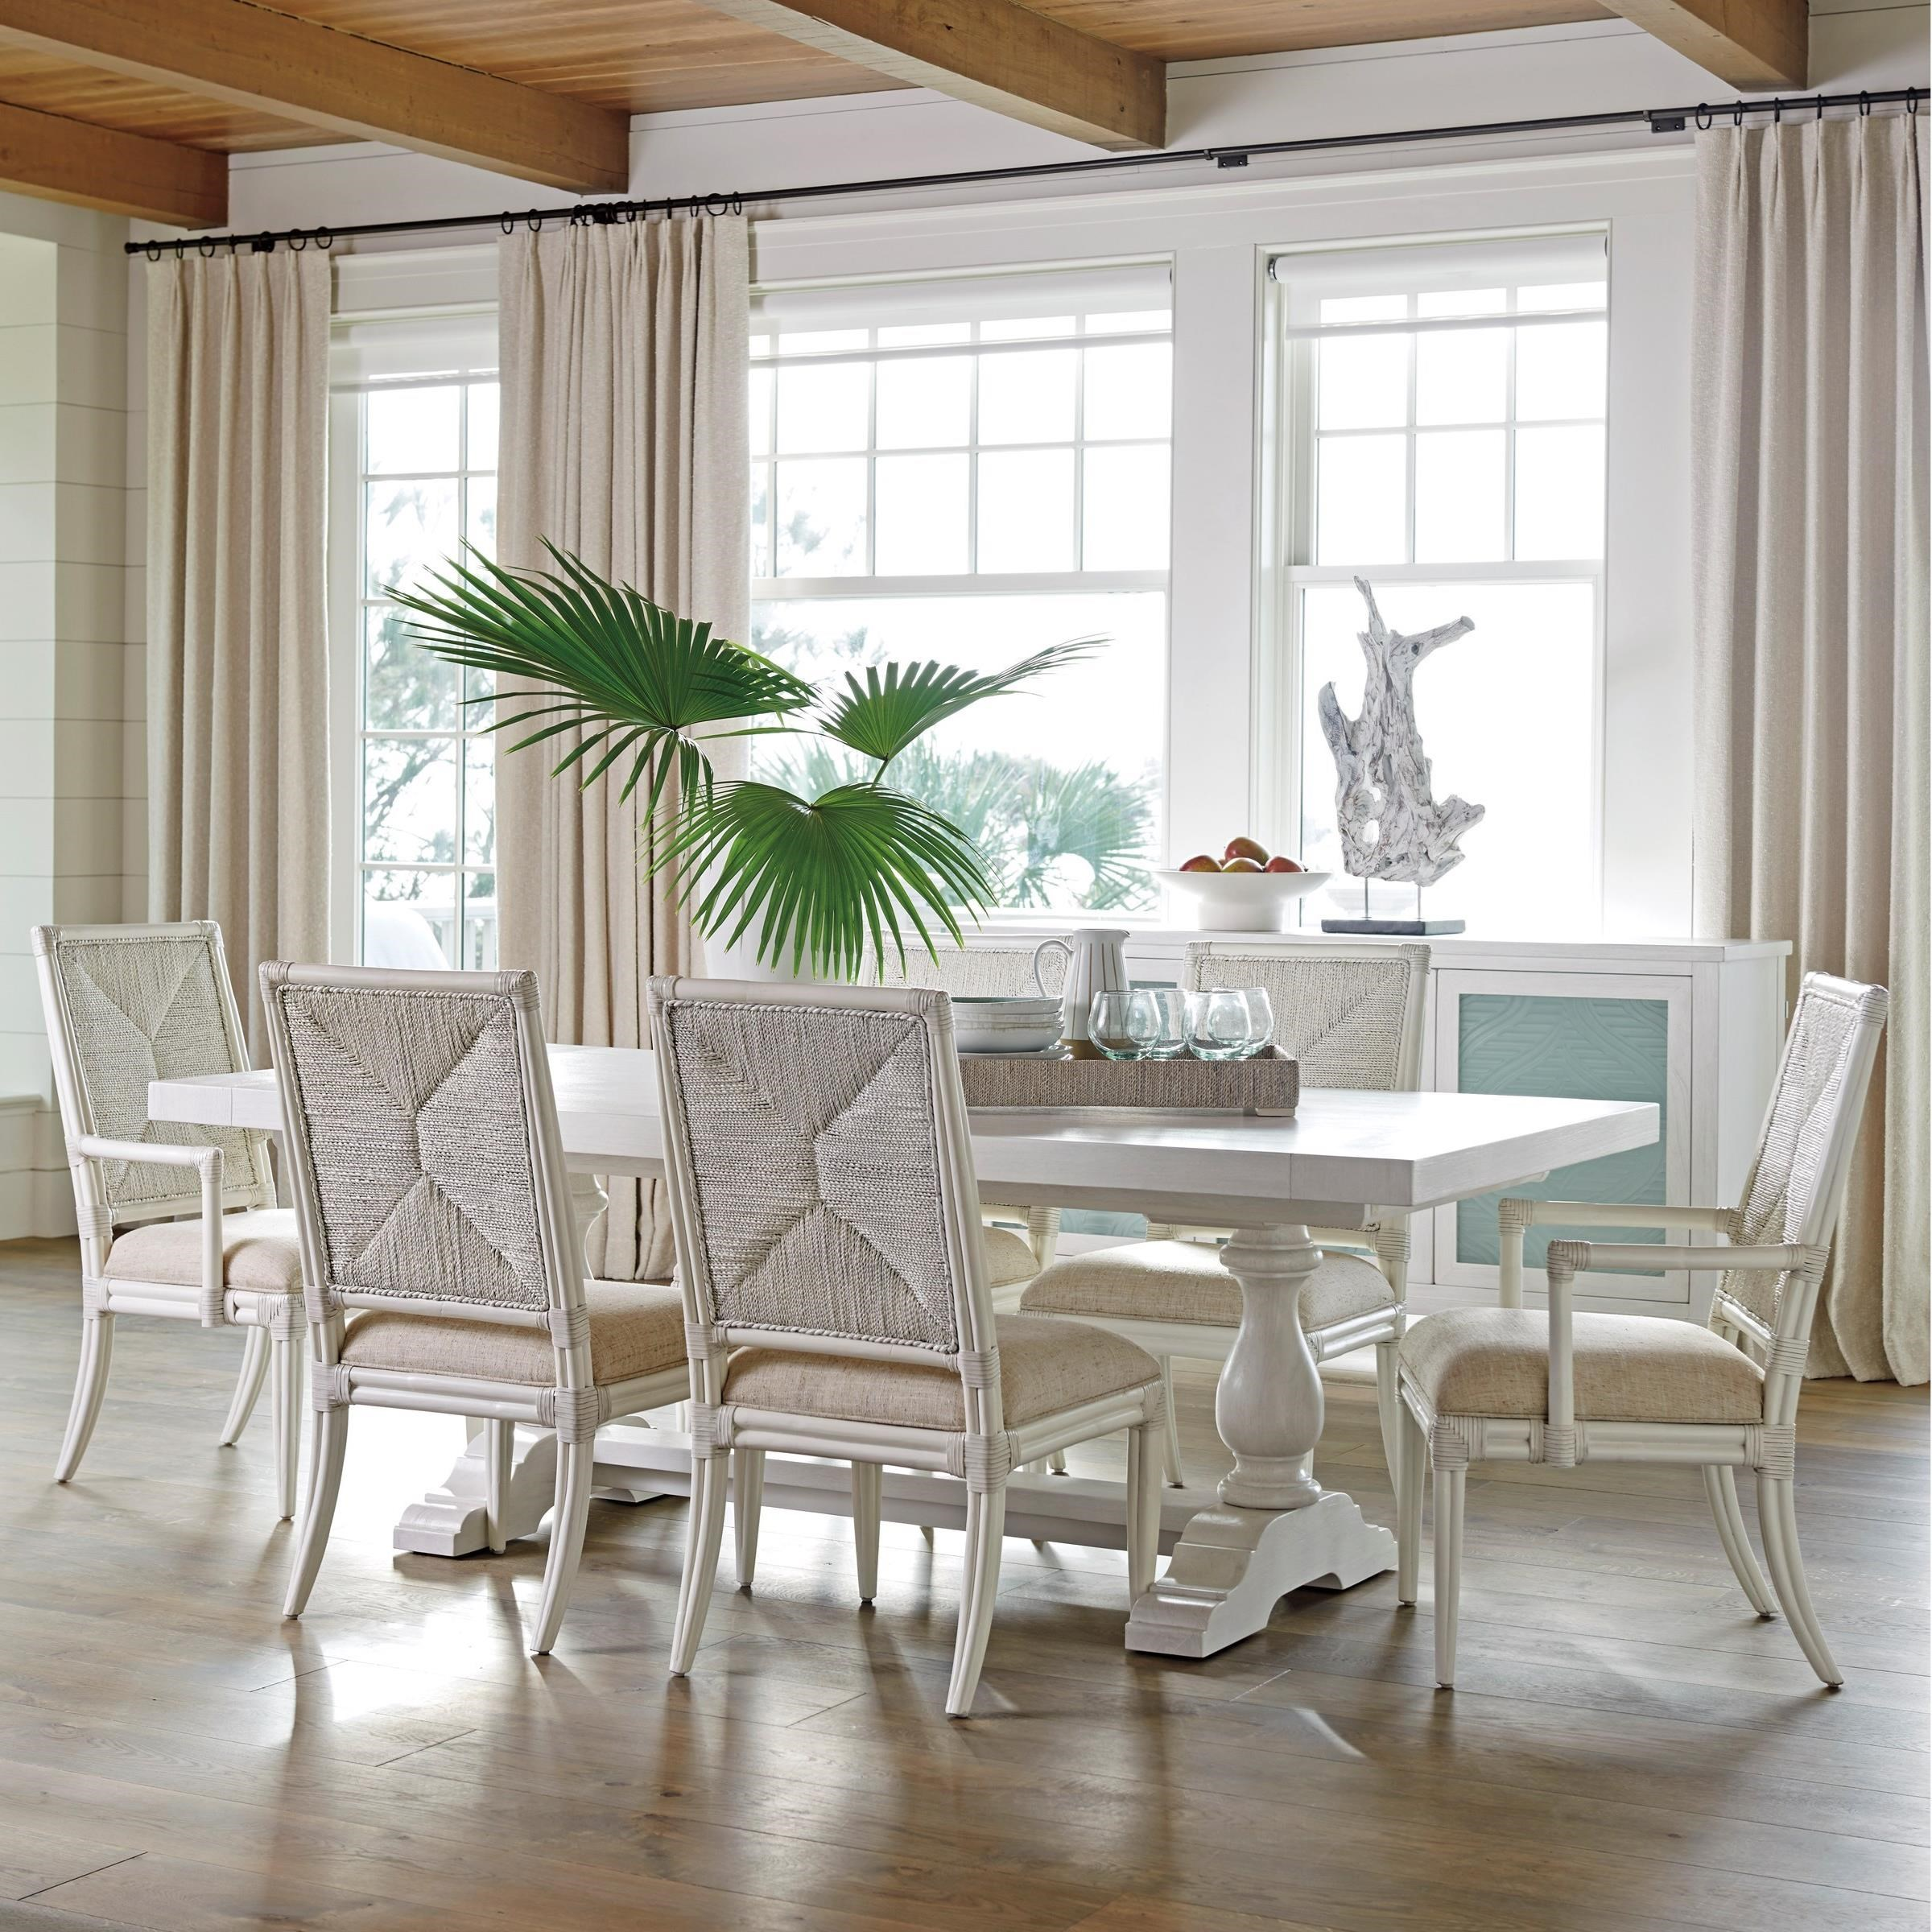 Ocean Breeze 7-Piece Dining Set by Tommy Bahama Home at Baer's Furniture